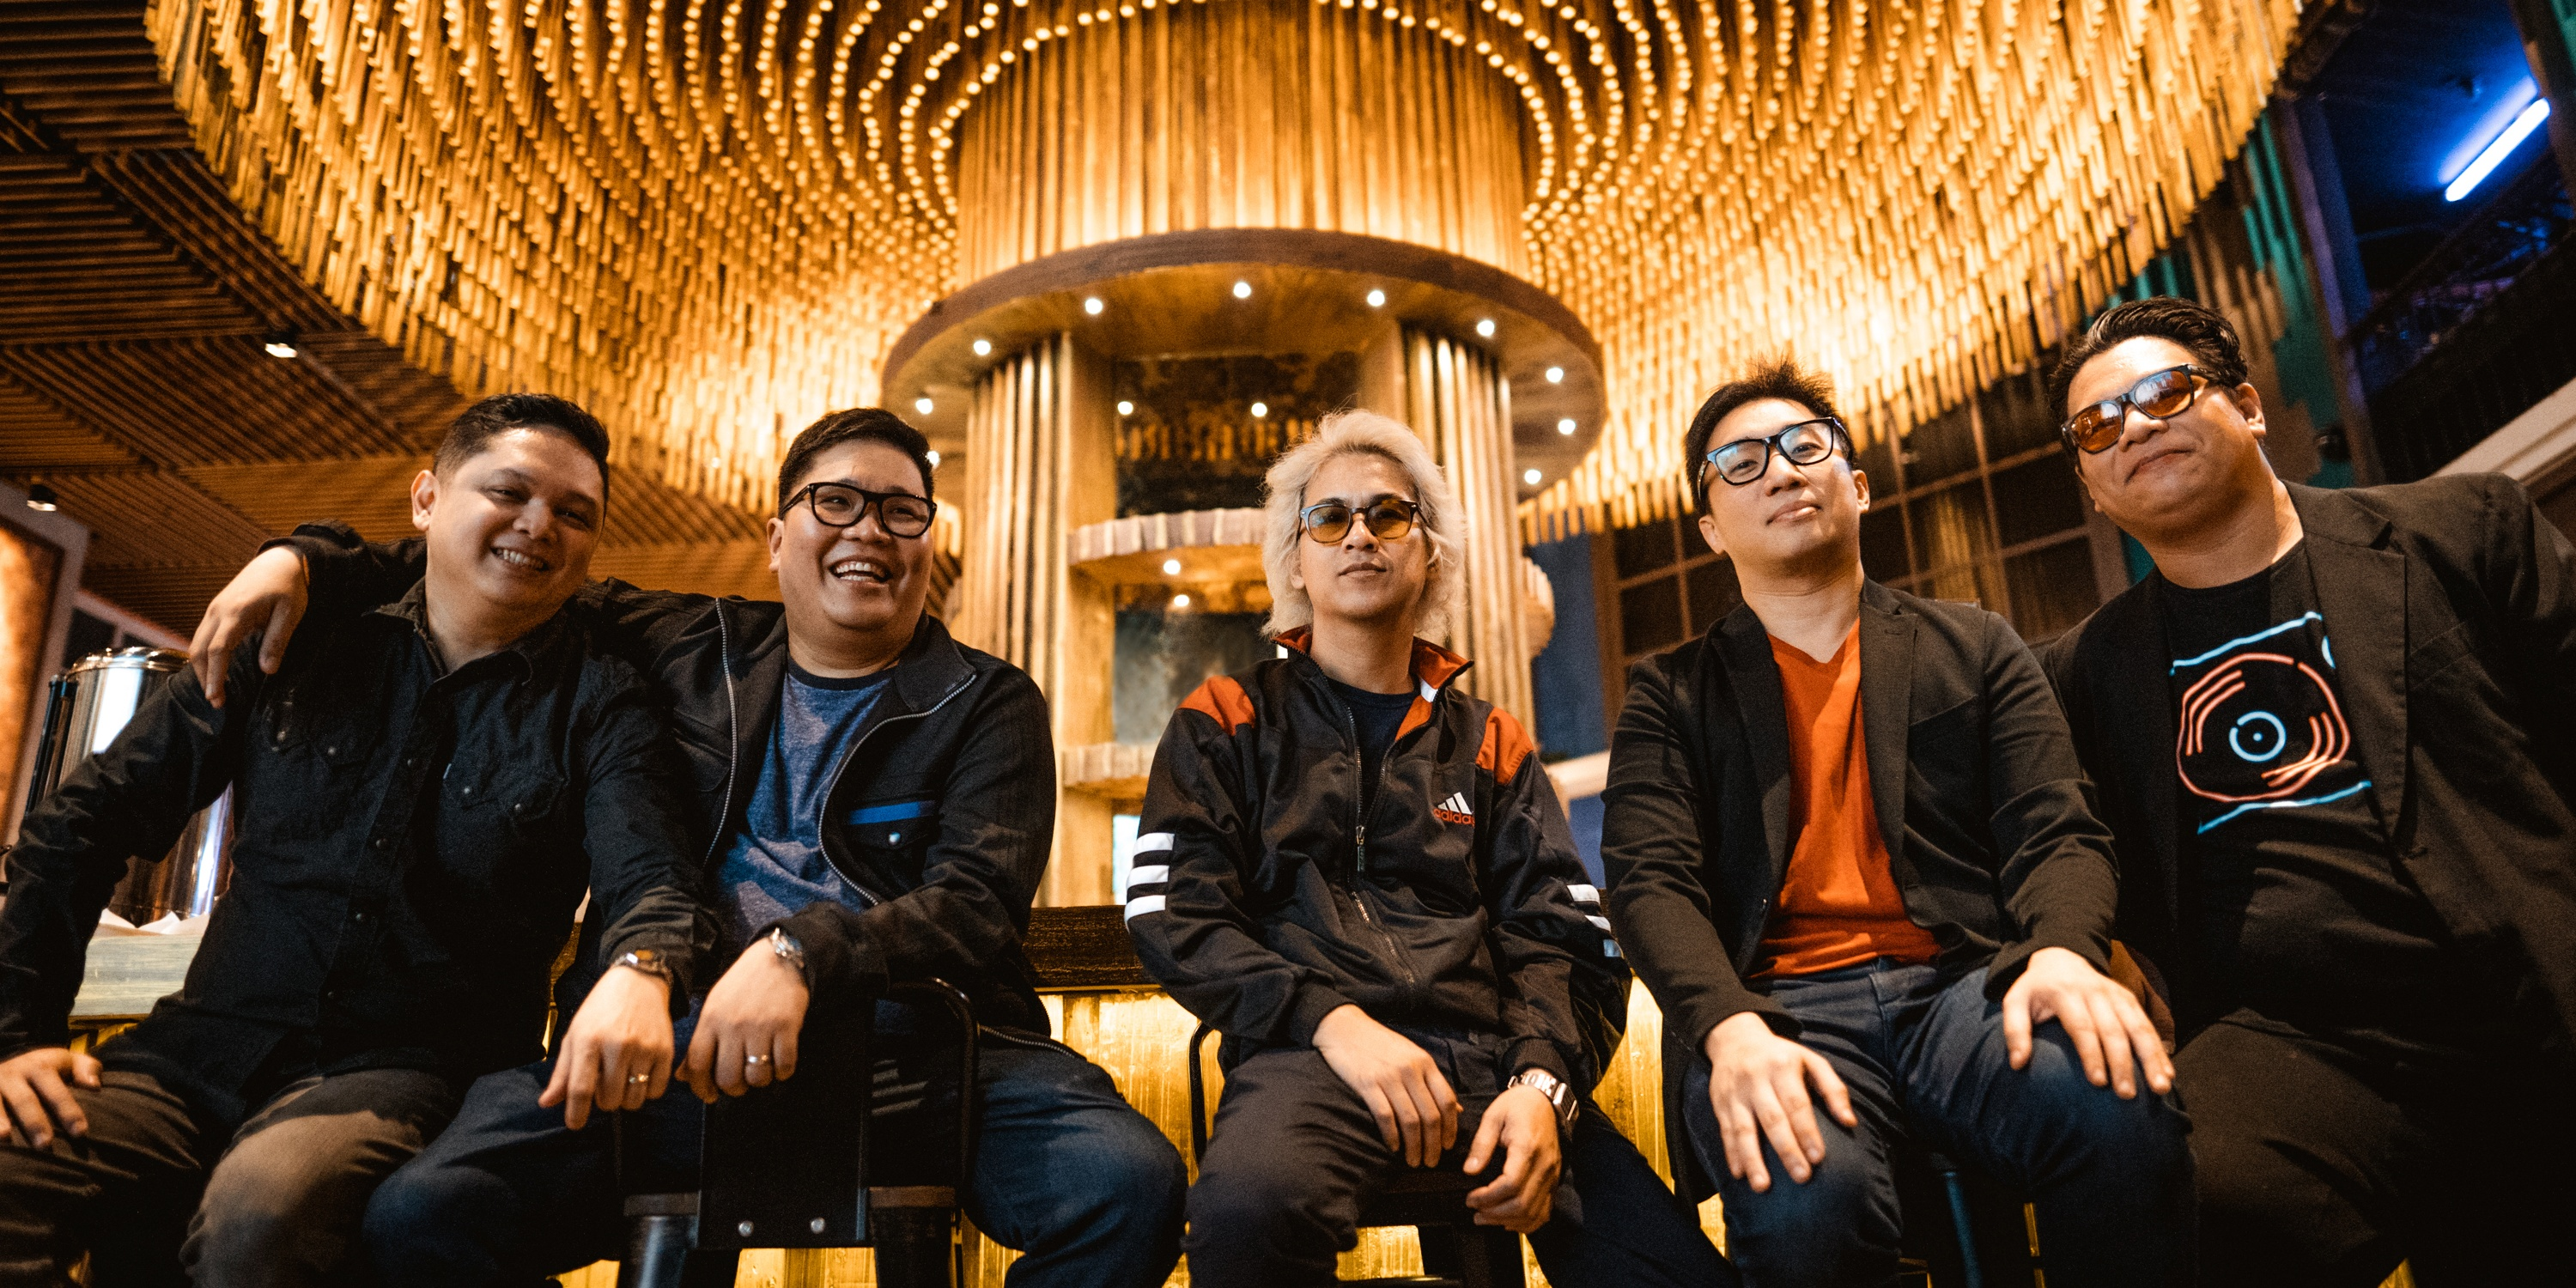 Ely Buendia and The Itchyworms on delivering their Greatest Hits and paying it forward